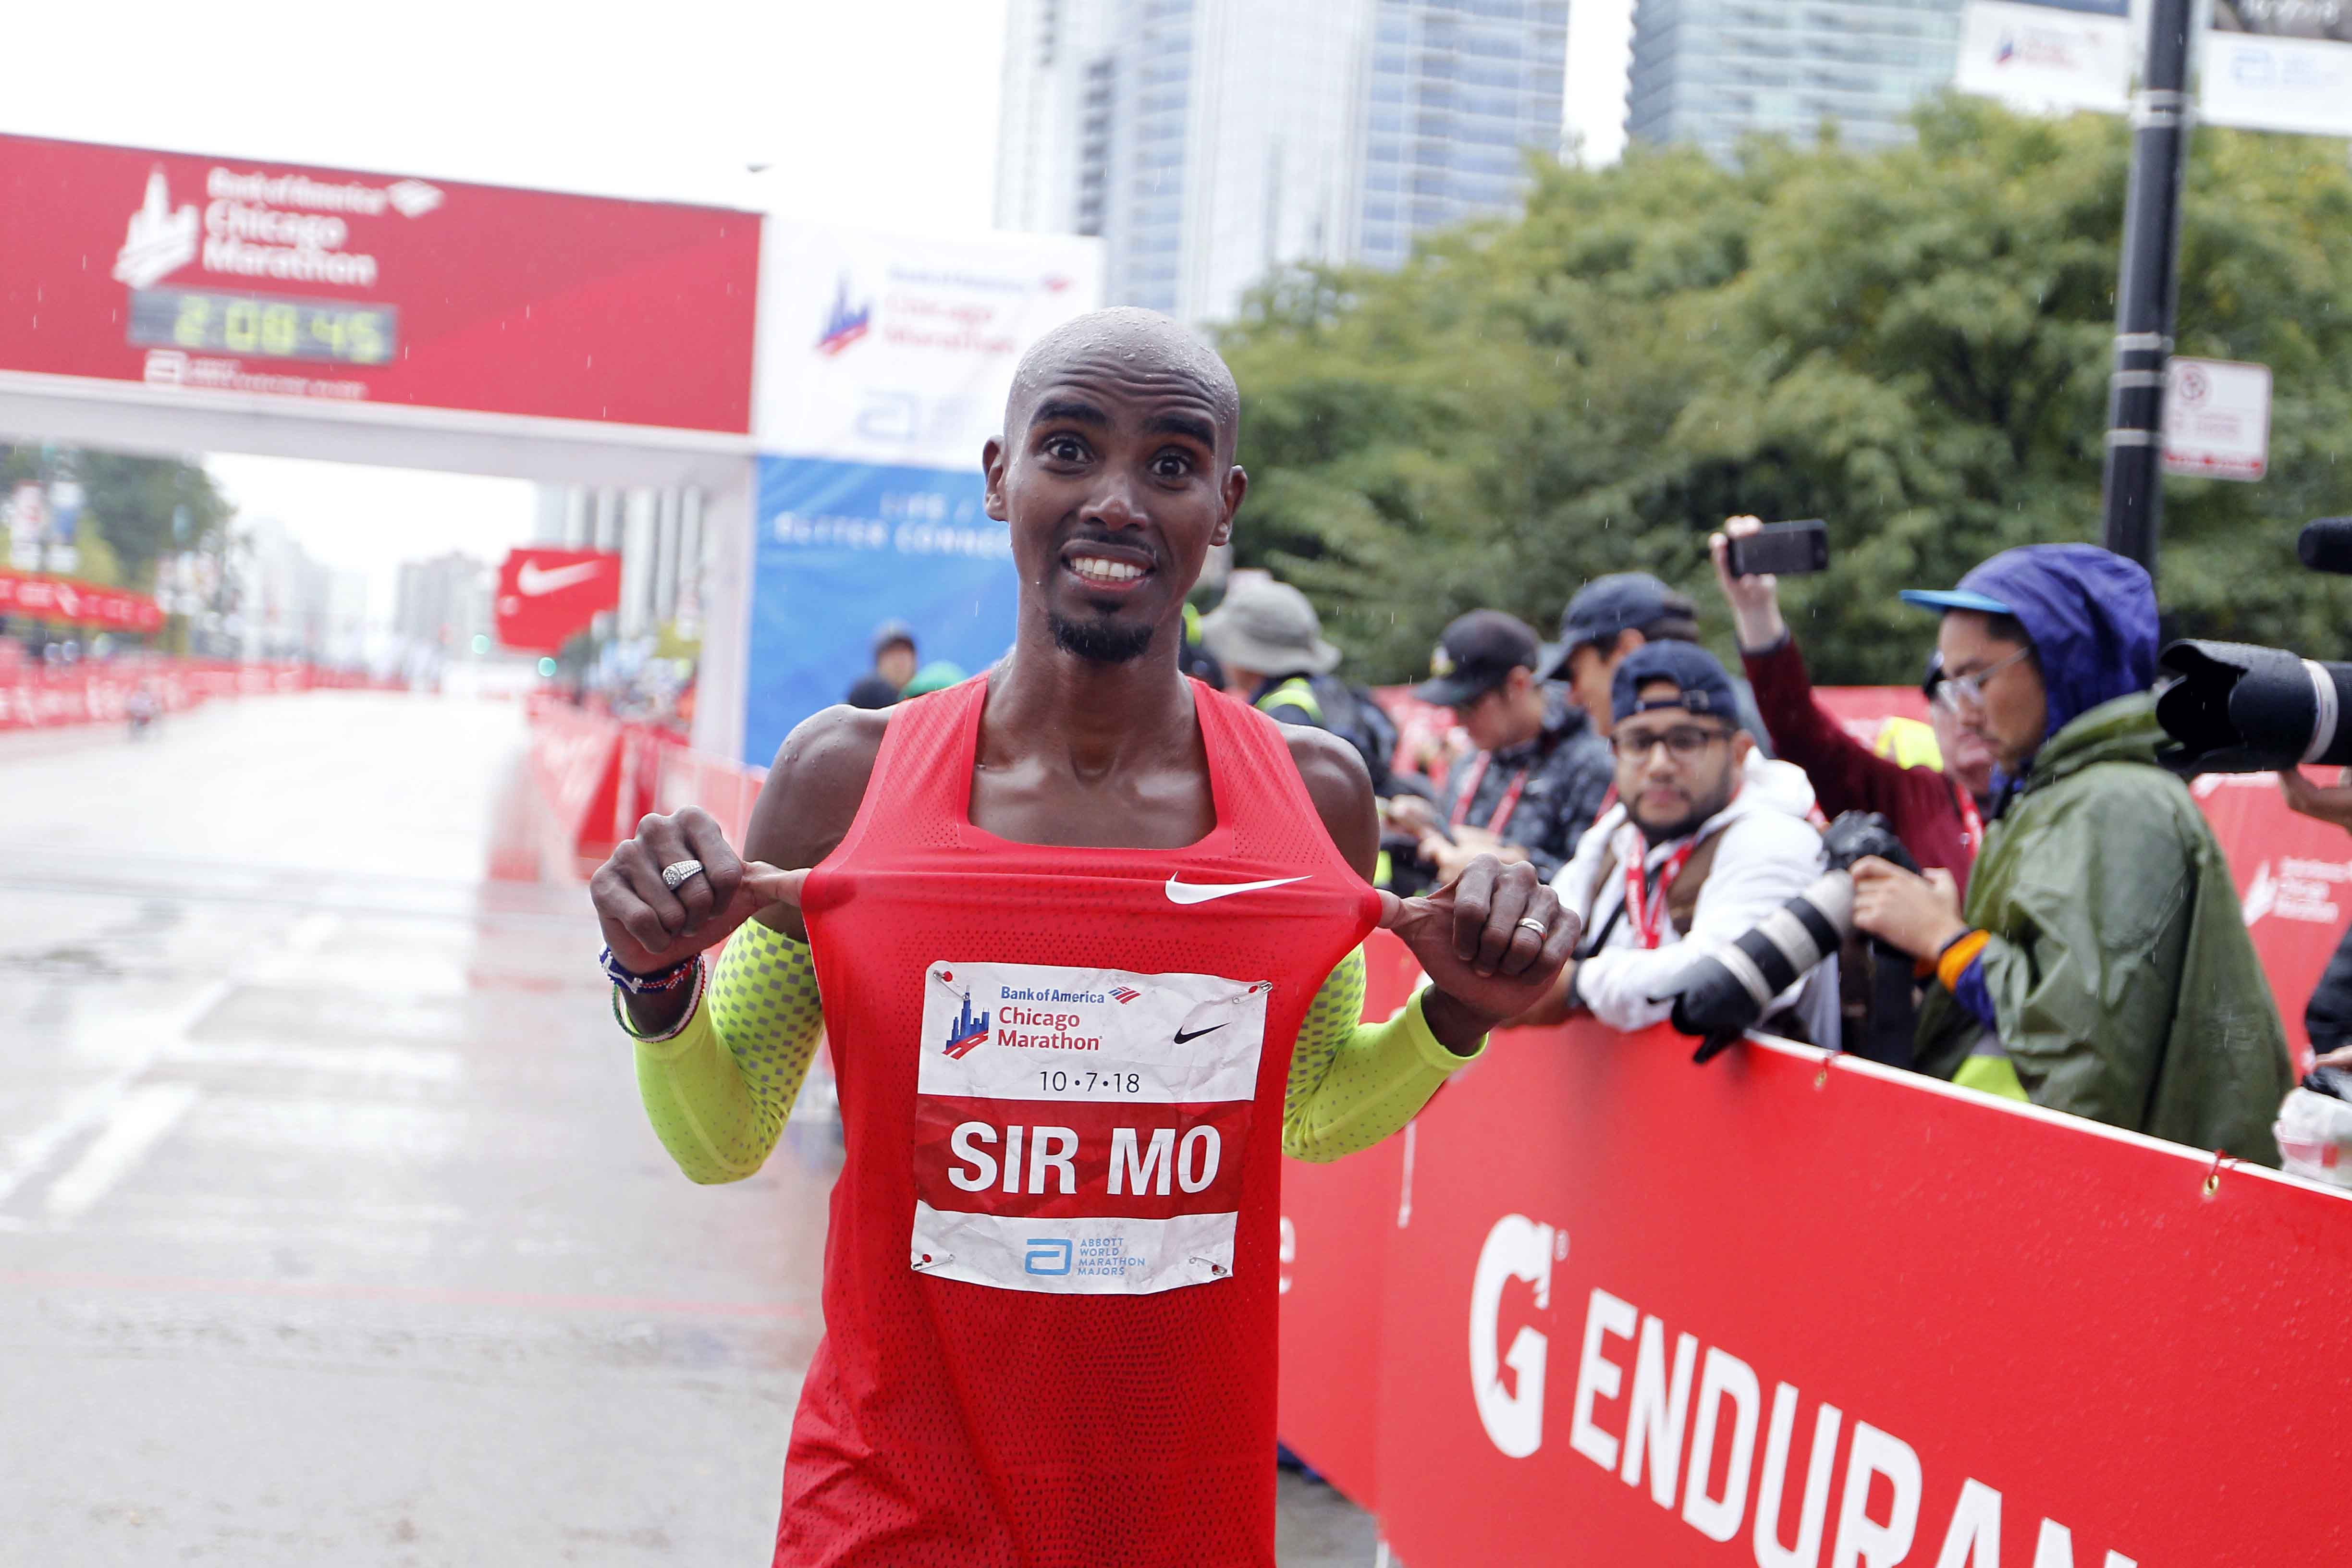 cf123cd71a97  Sir Mo  Wins the Chicago Marathon